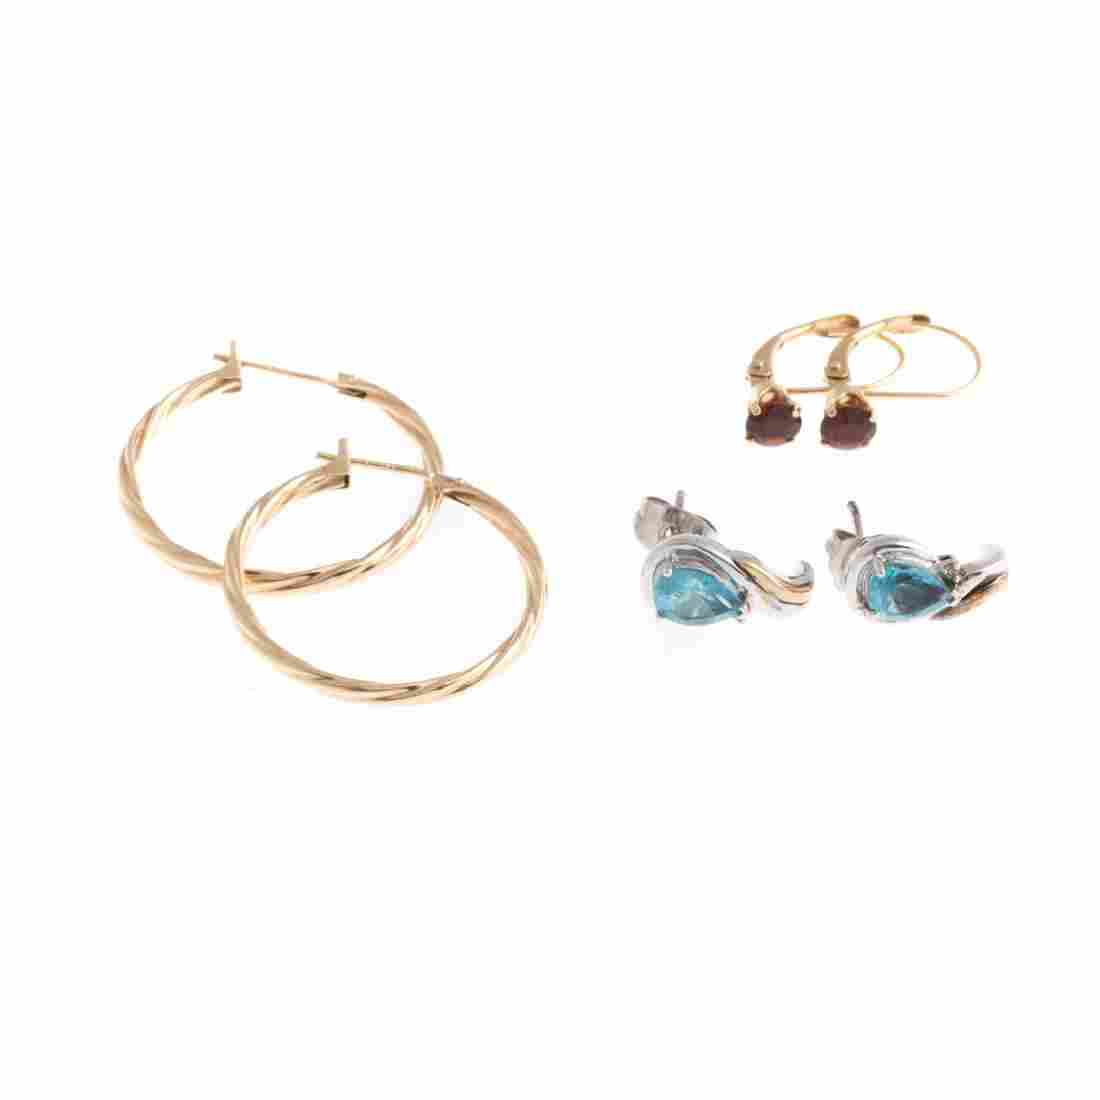 A Trio of Lady's Gold Gemstone Earrings